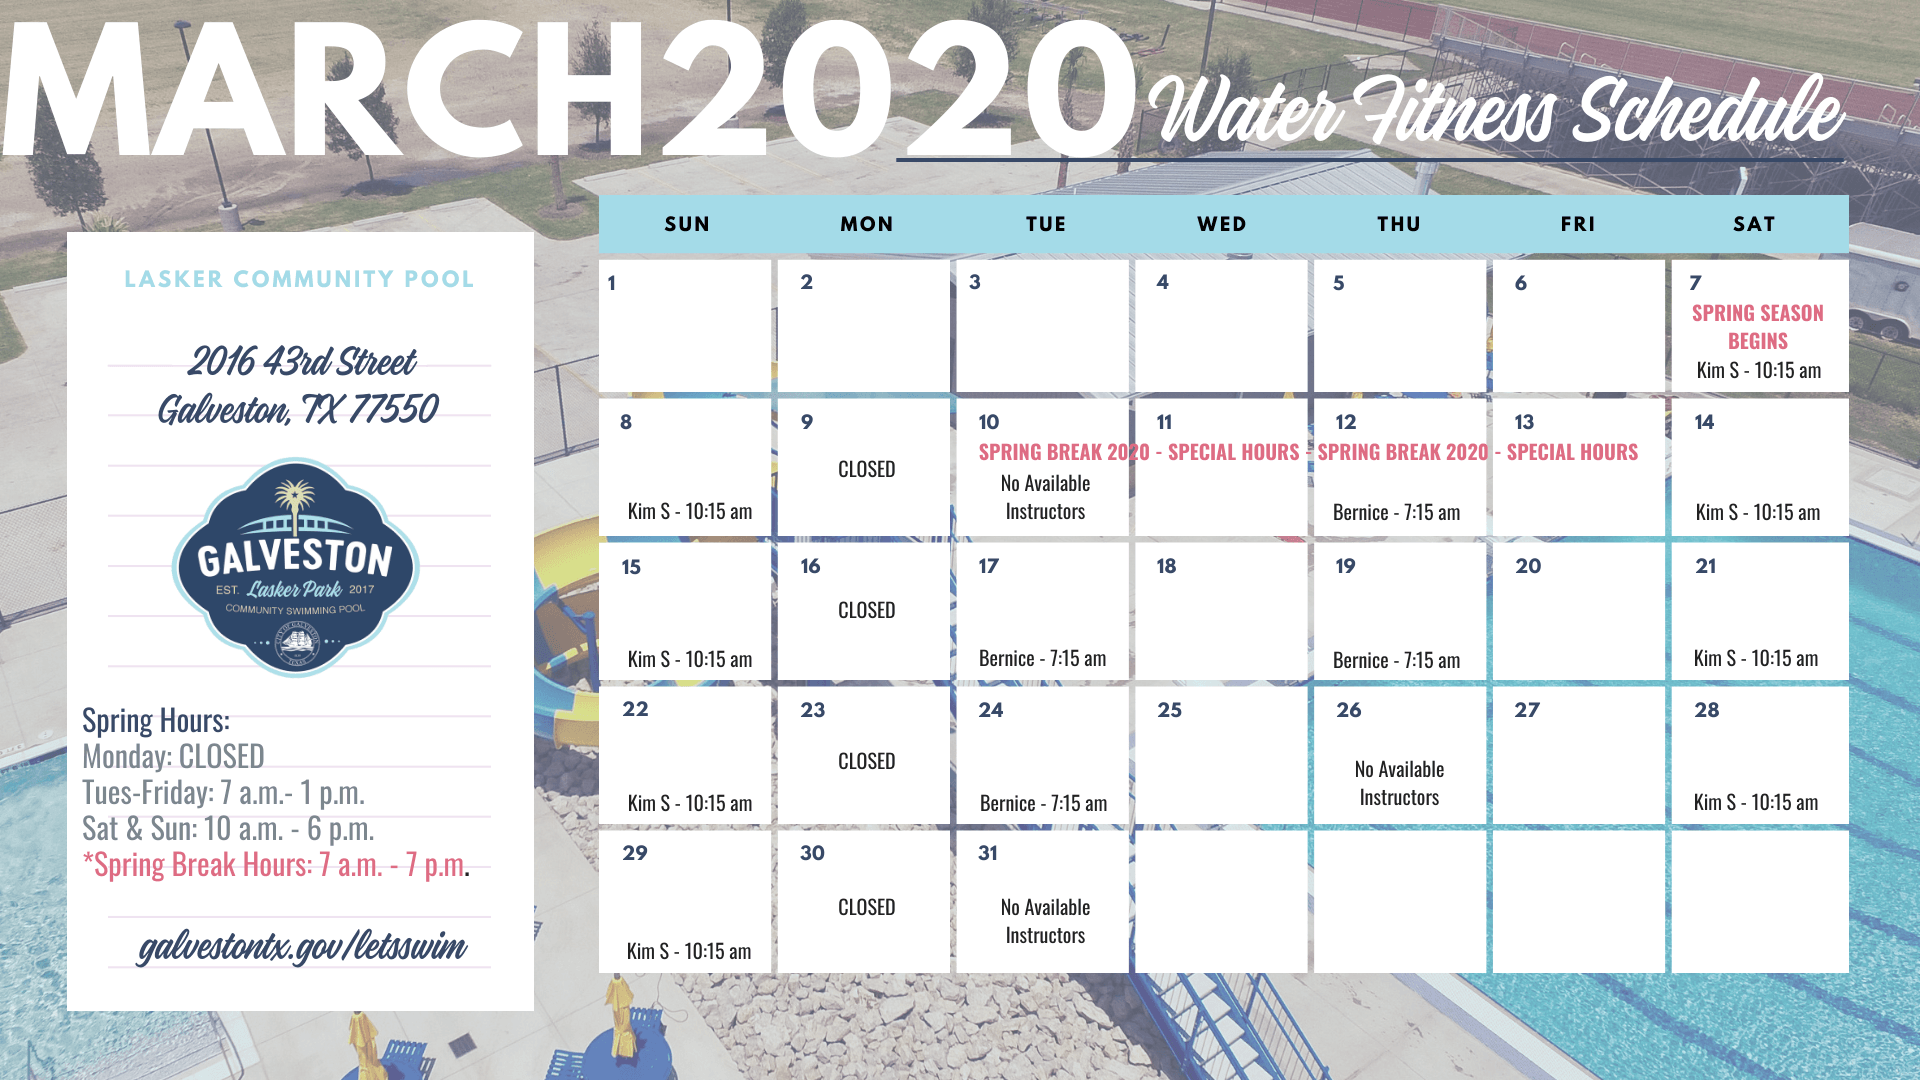 march 2020 water fitness schedule